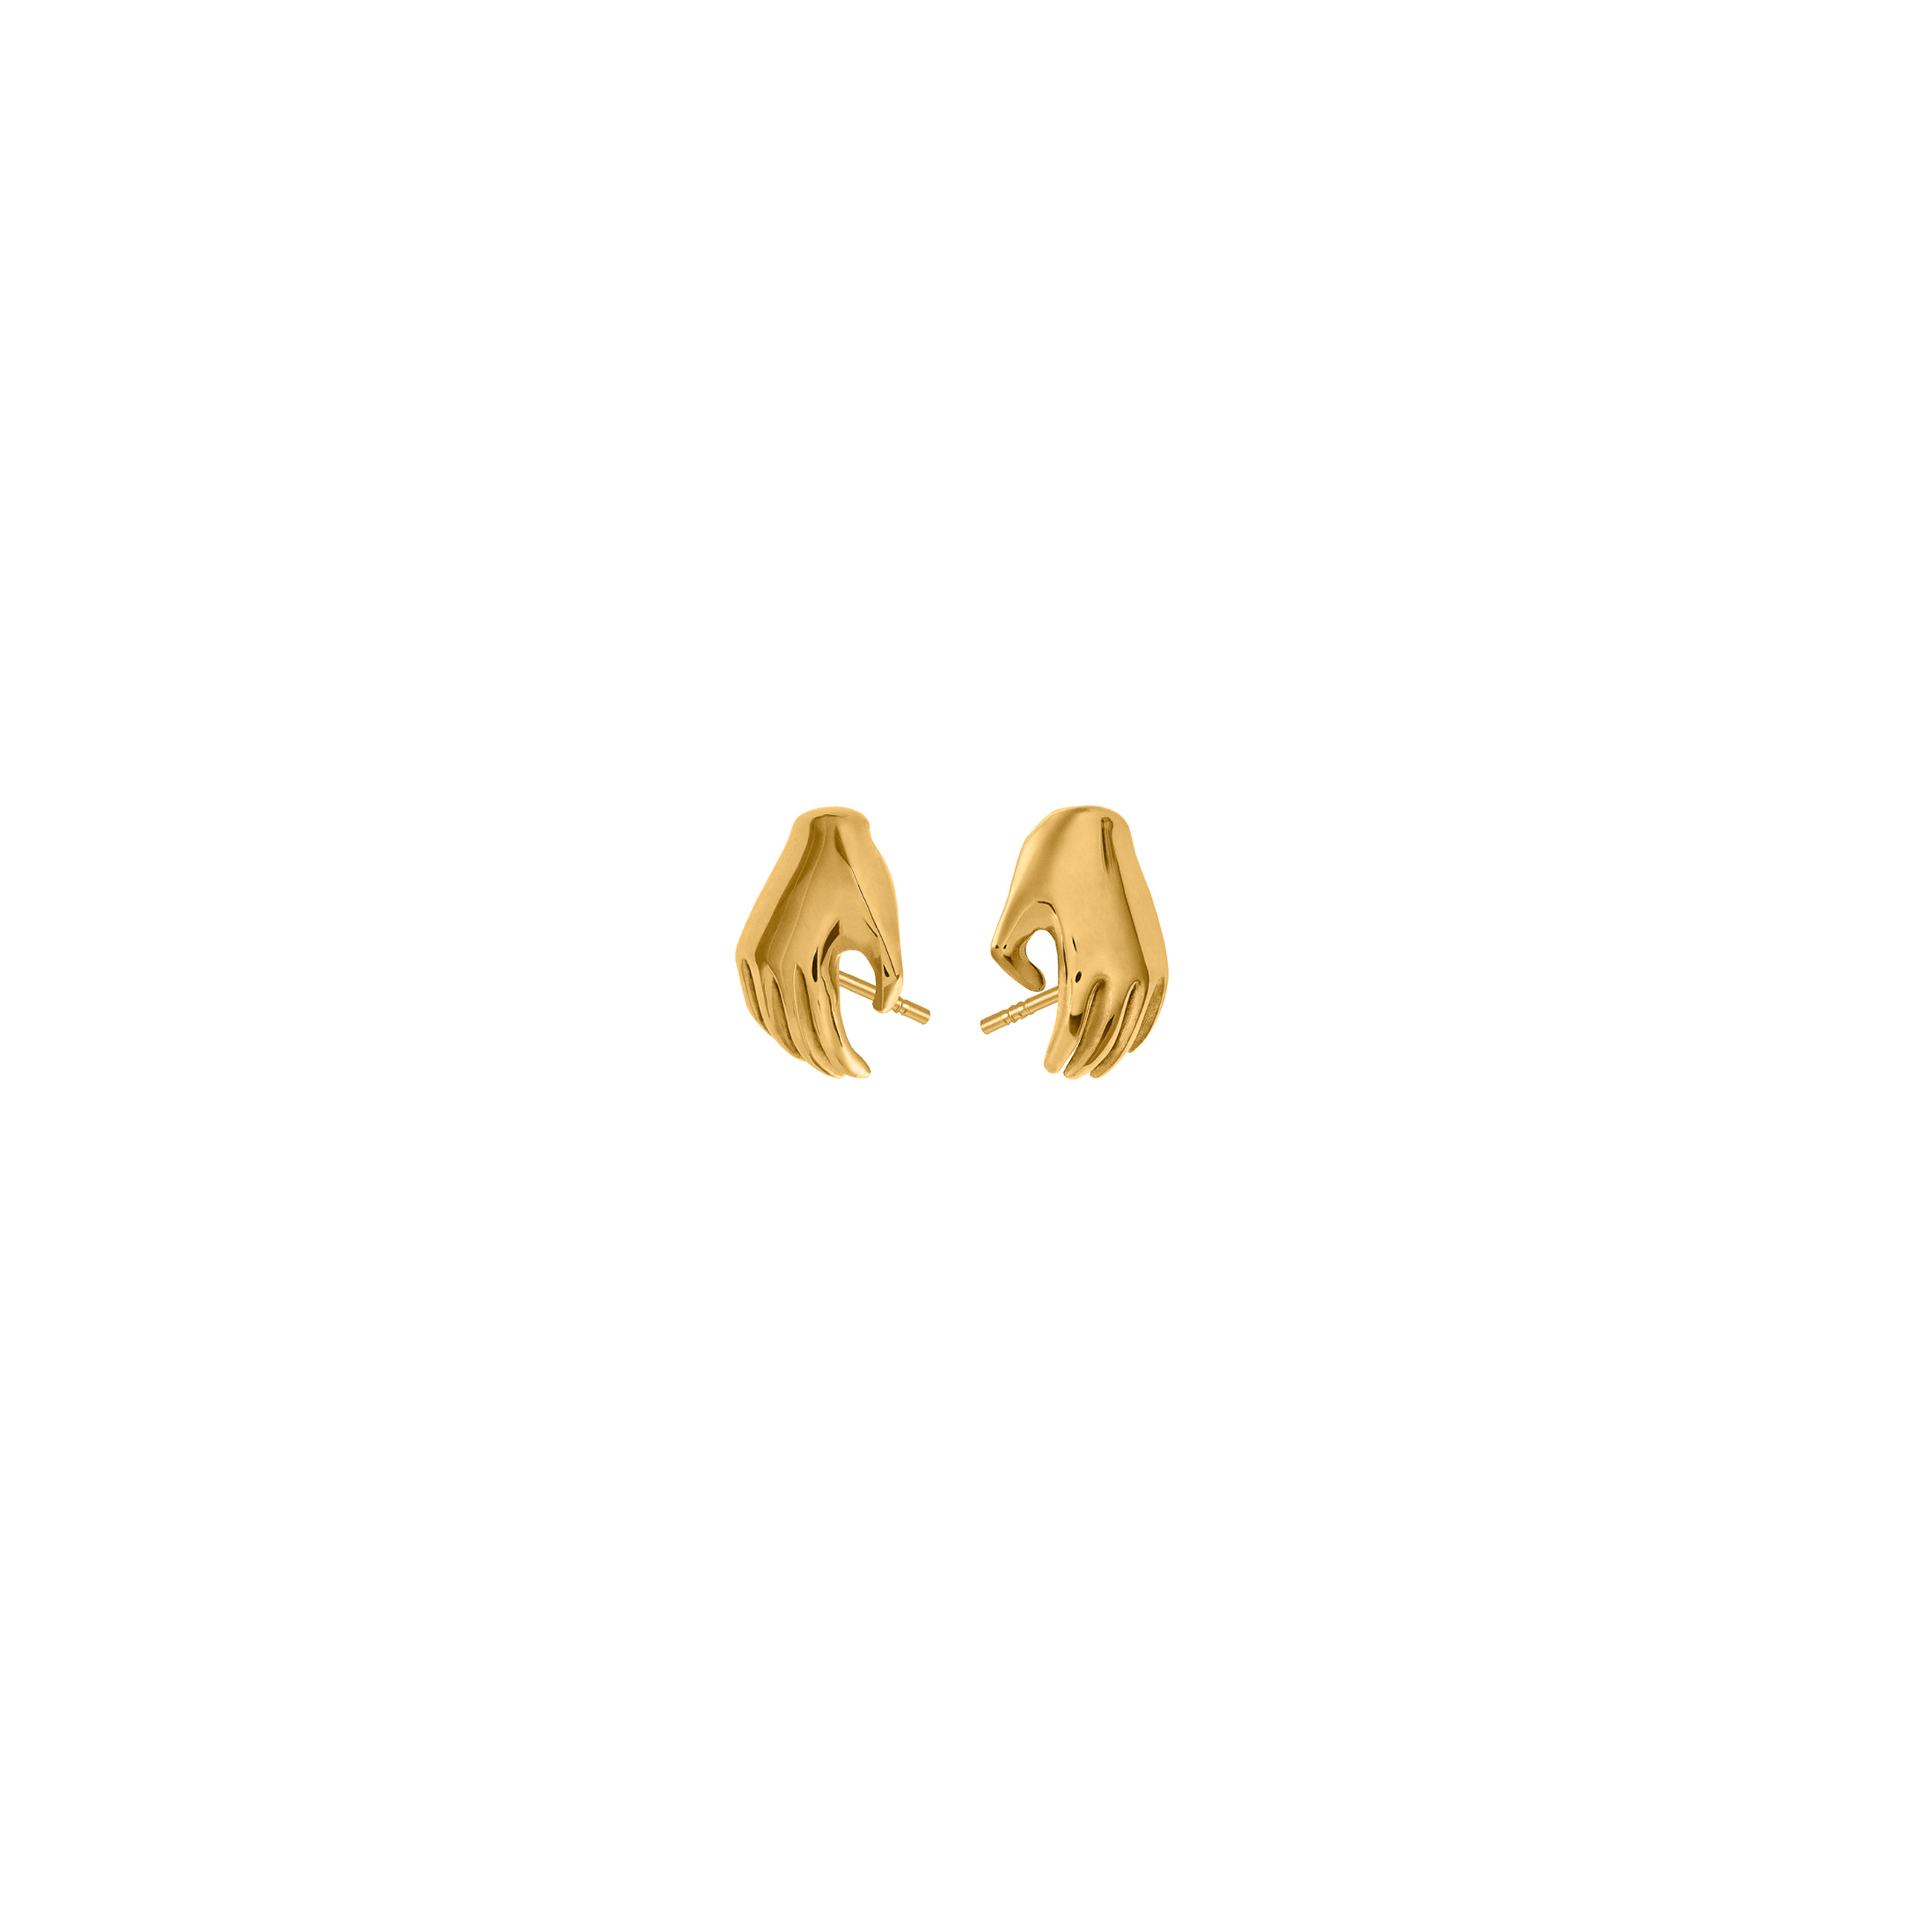 Hand Earrings 3D Gold